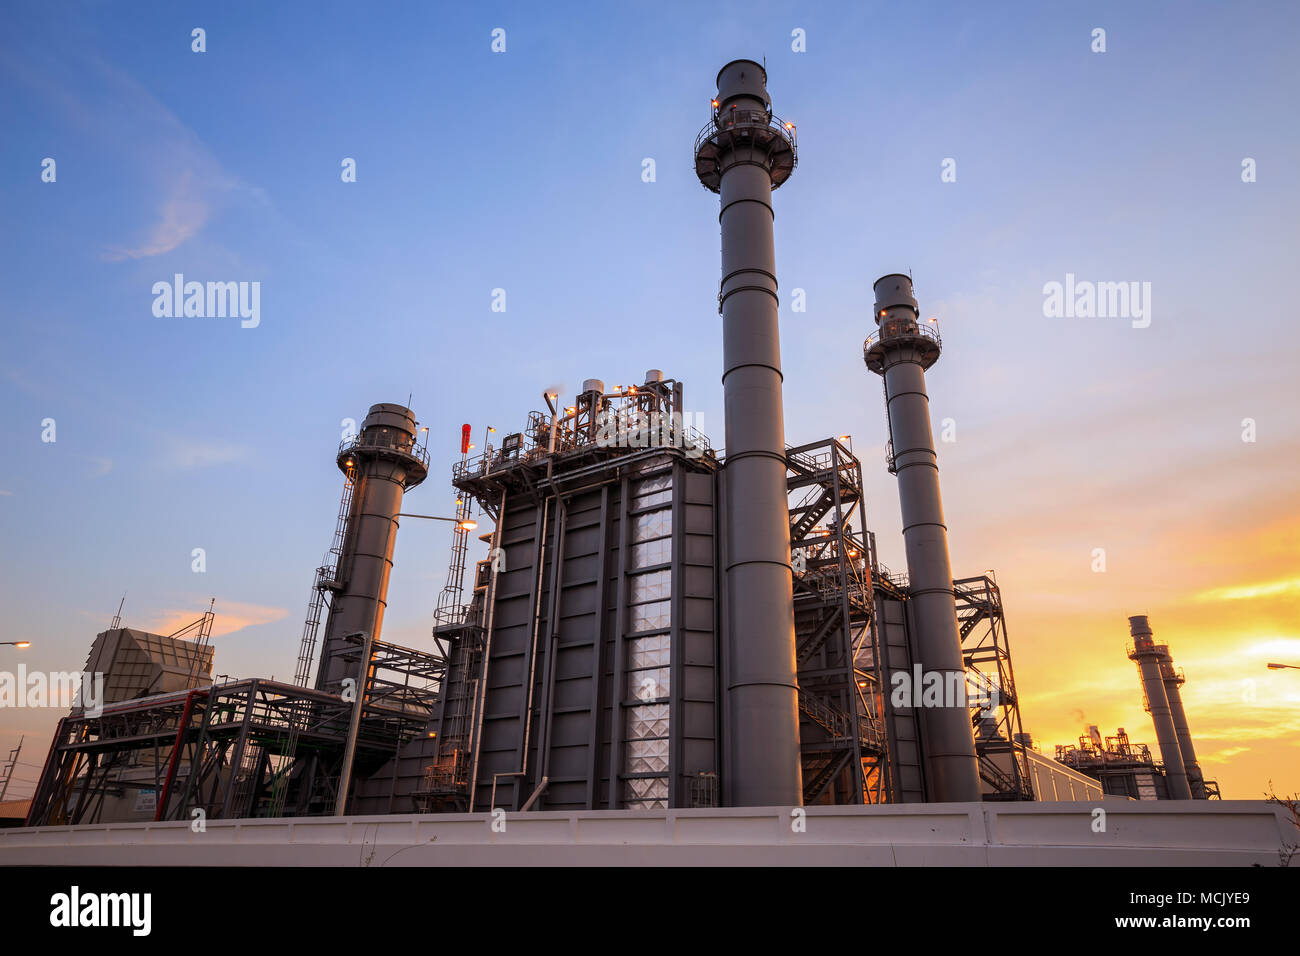 Coal Combine Stock Photos Images Alamy John Deere 9610 Wiring Diagram Gas Electrical Power Plant At Dusk With Blue Sky Image